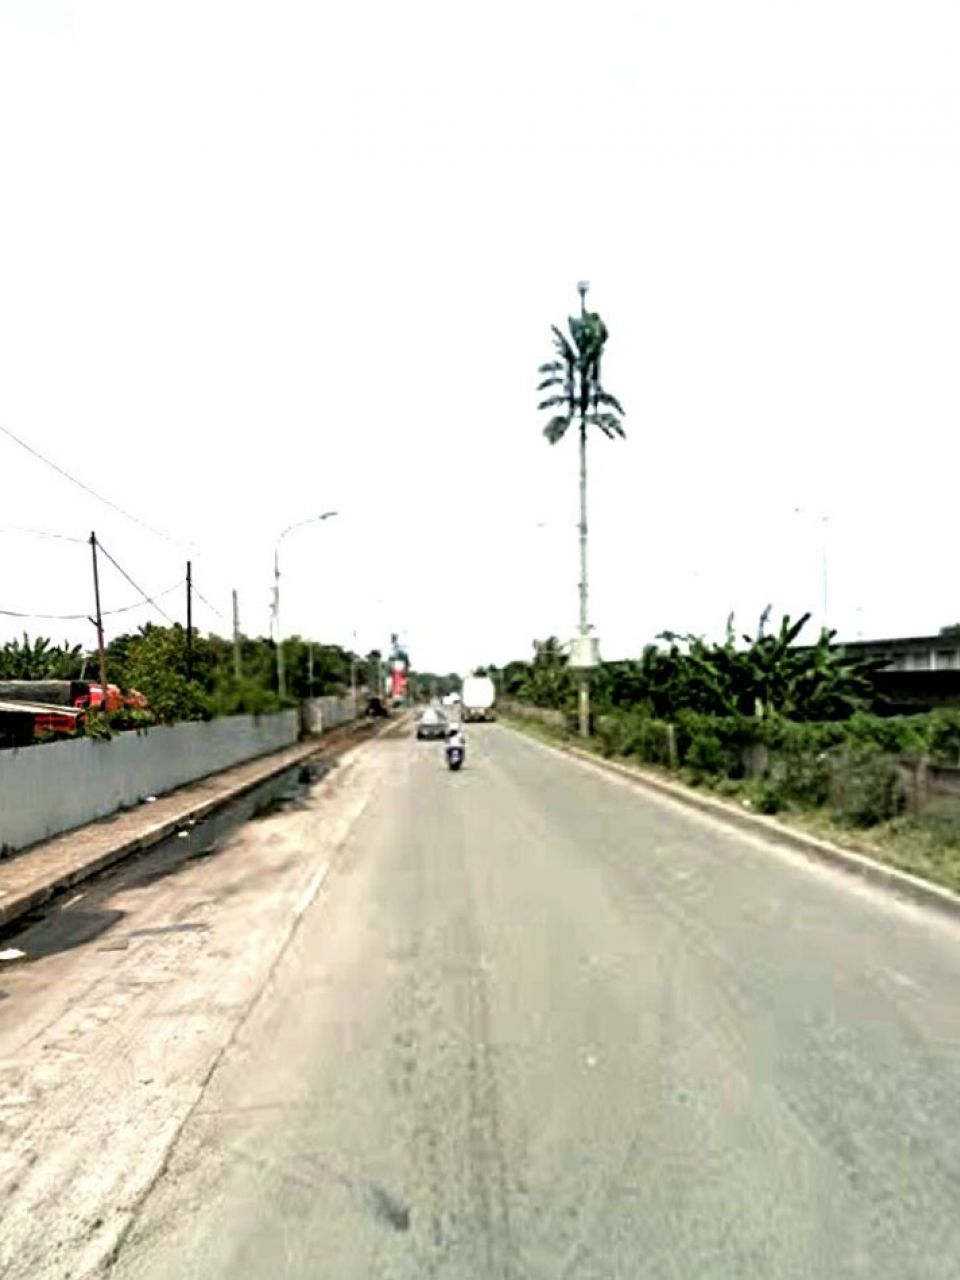 Commercial Land 2.8 Ha in Cakung, Jakarta Timur